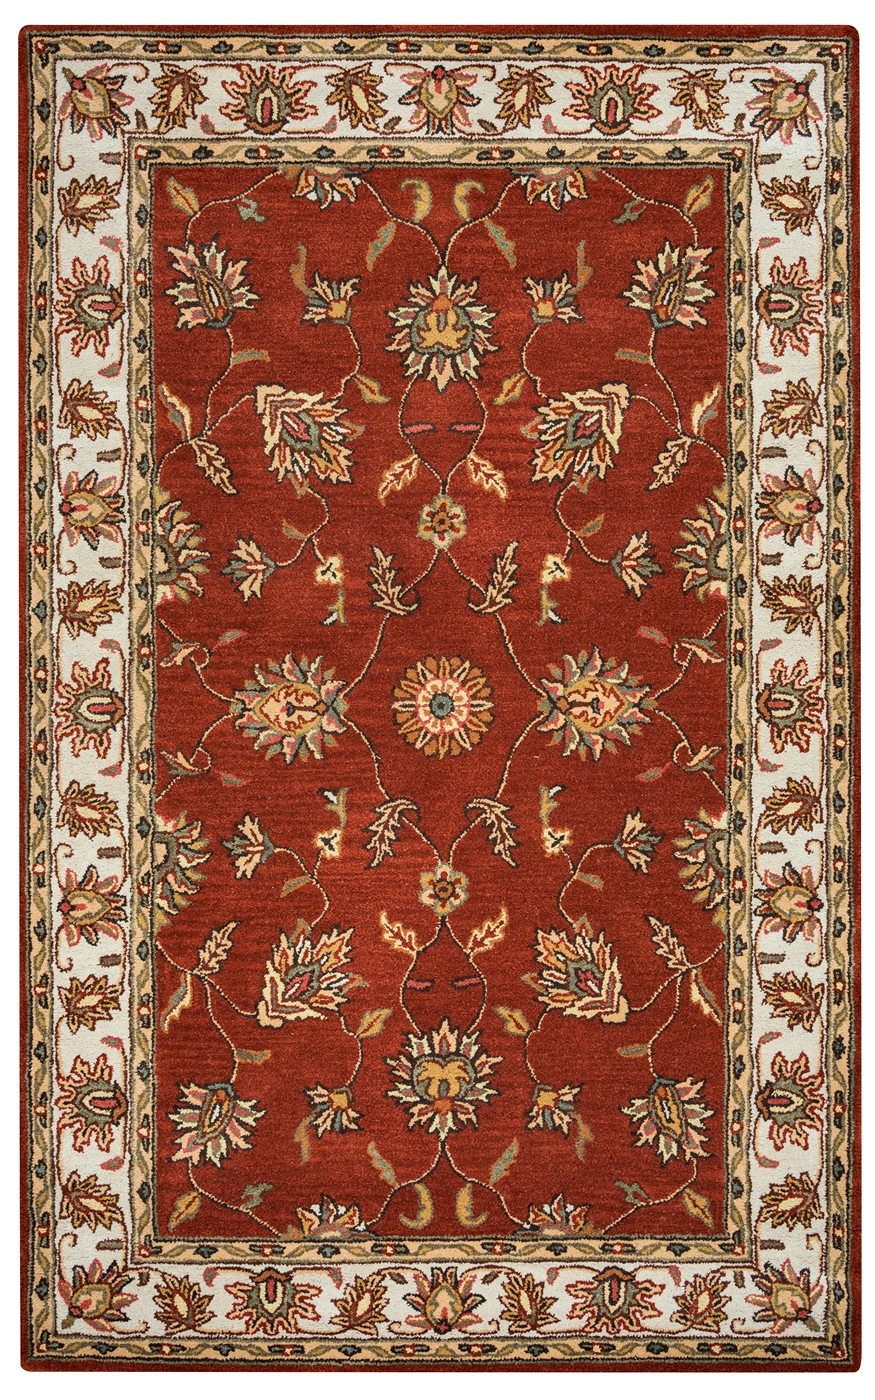 Volare Floral Trellis Pattern Wool Area Rug In Rust Taupe